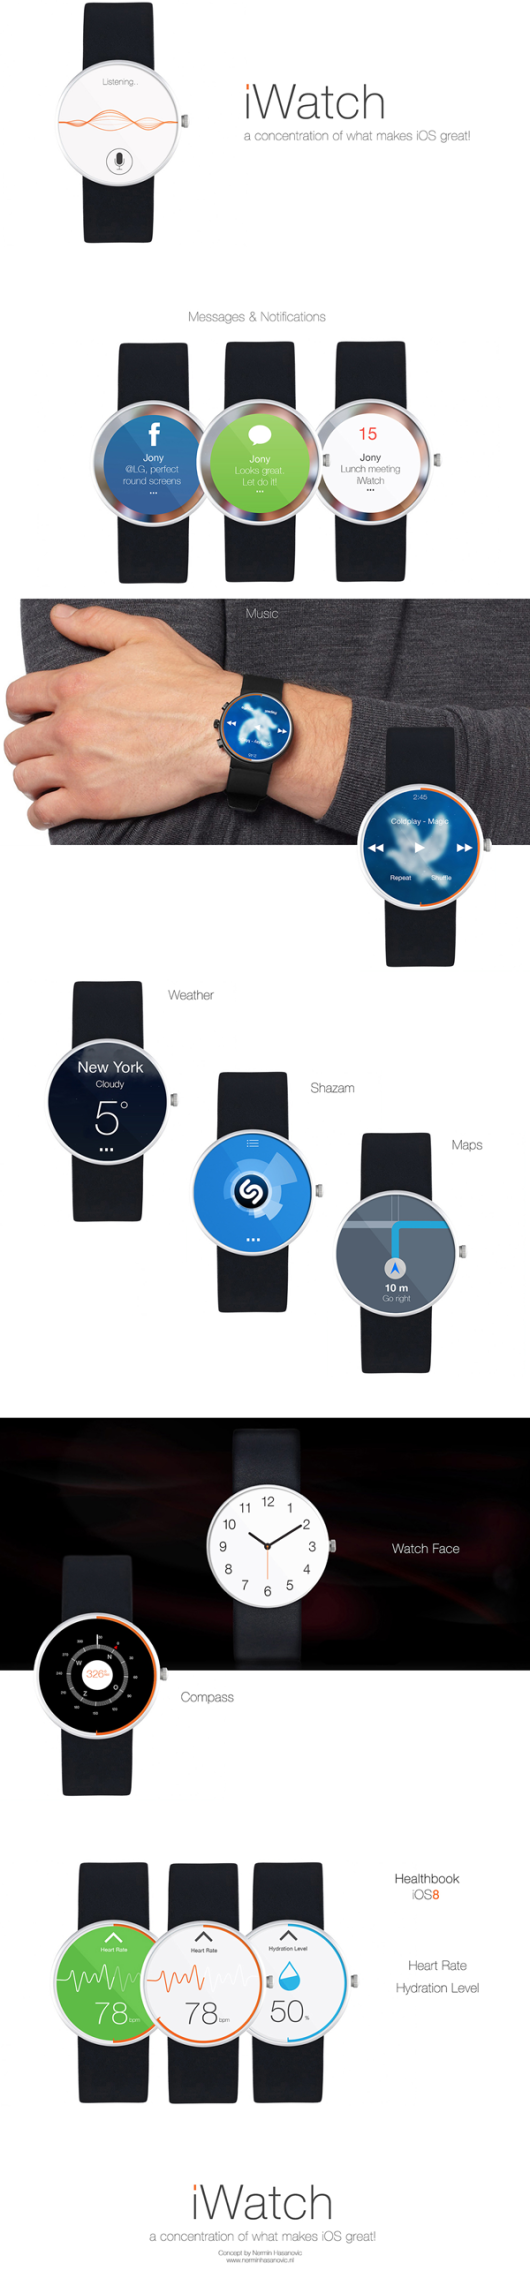 iWatch-concept1